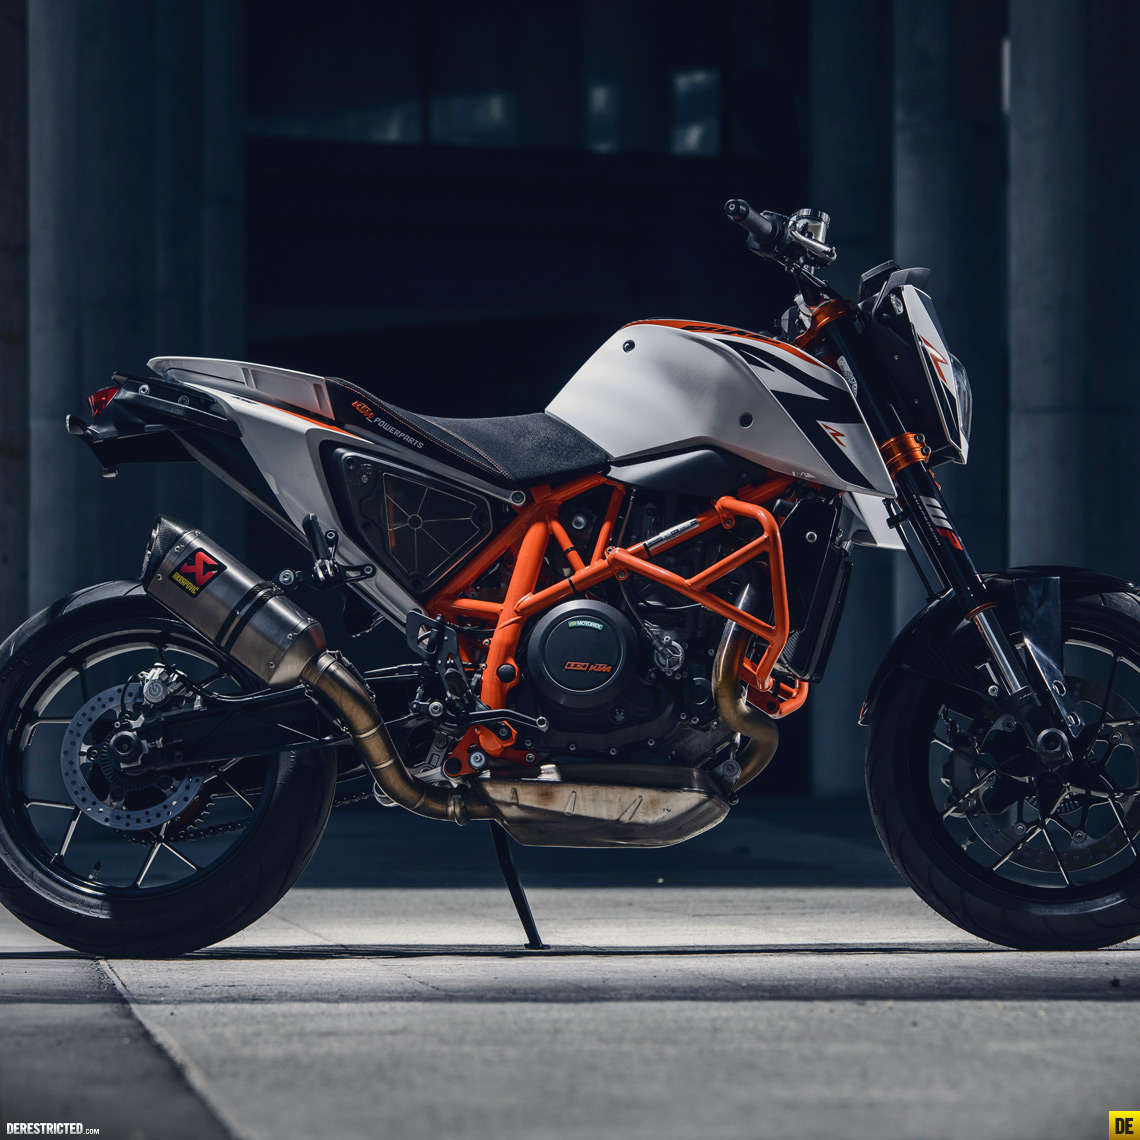 2014 Ktm 690 Duke R Photoshoot Derestricted